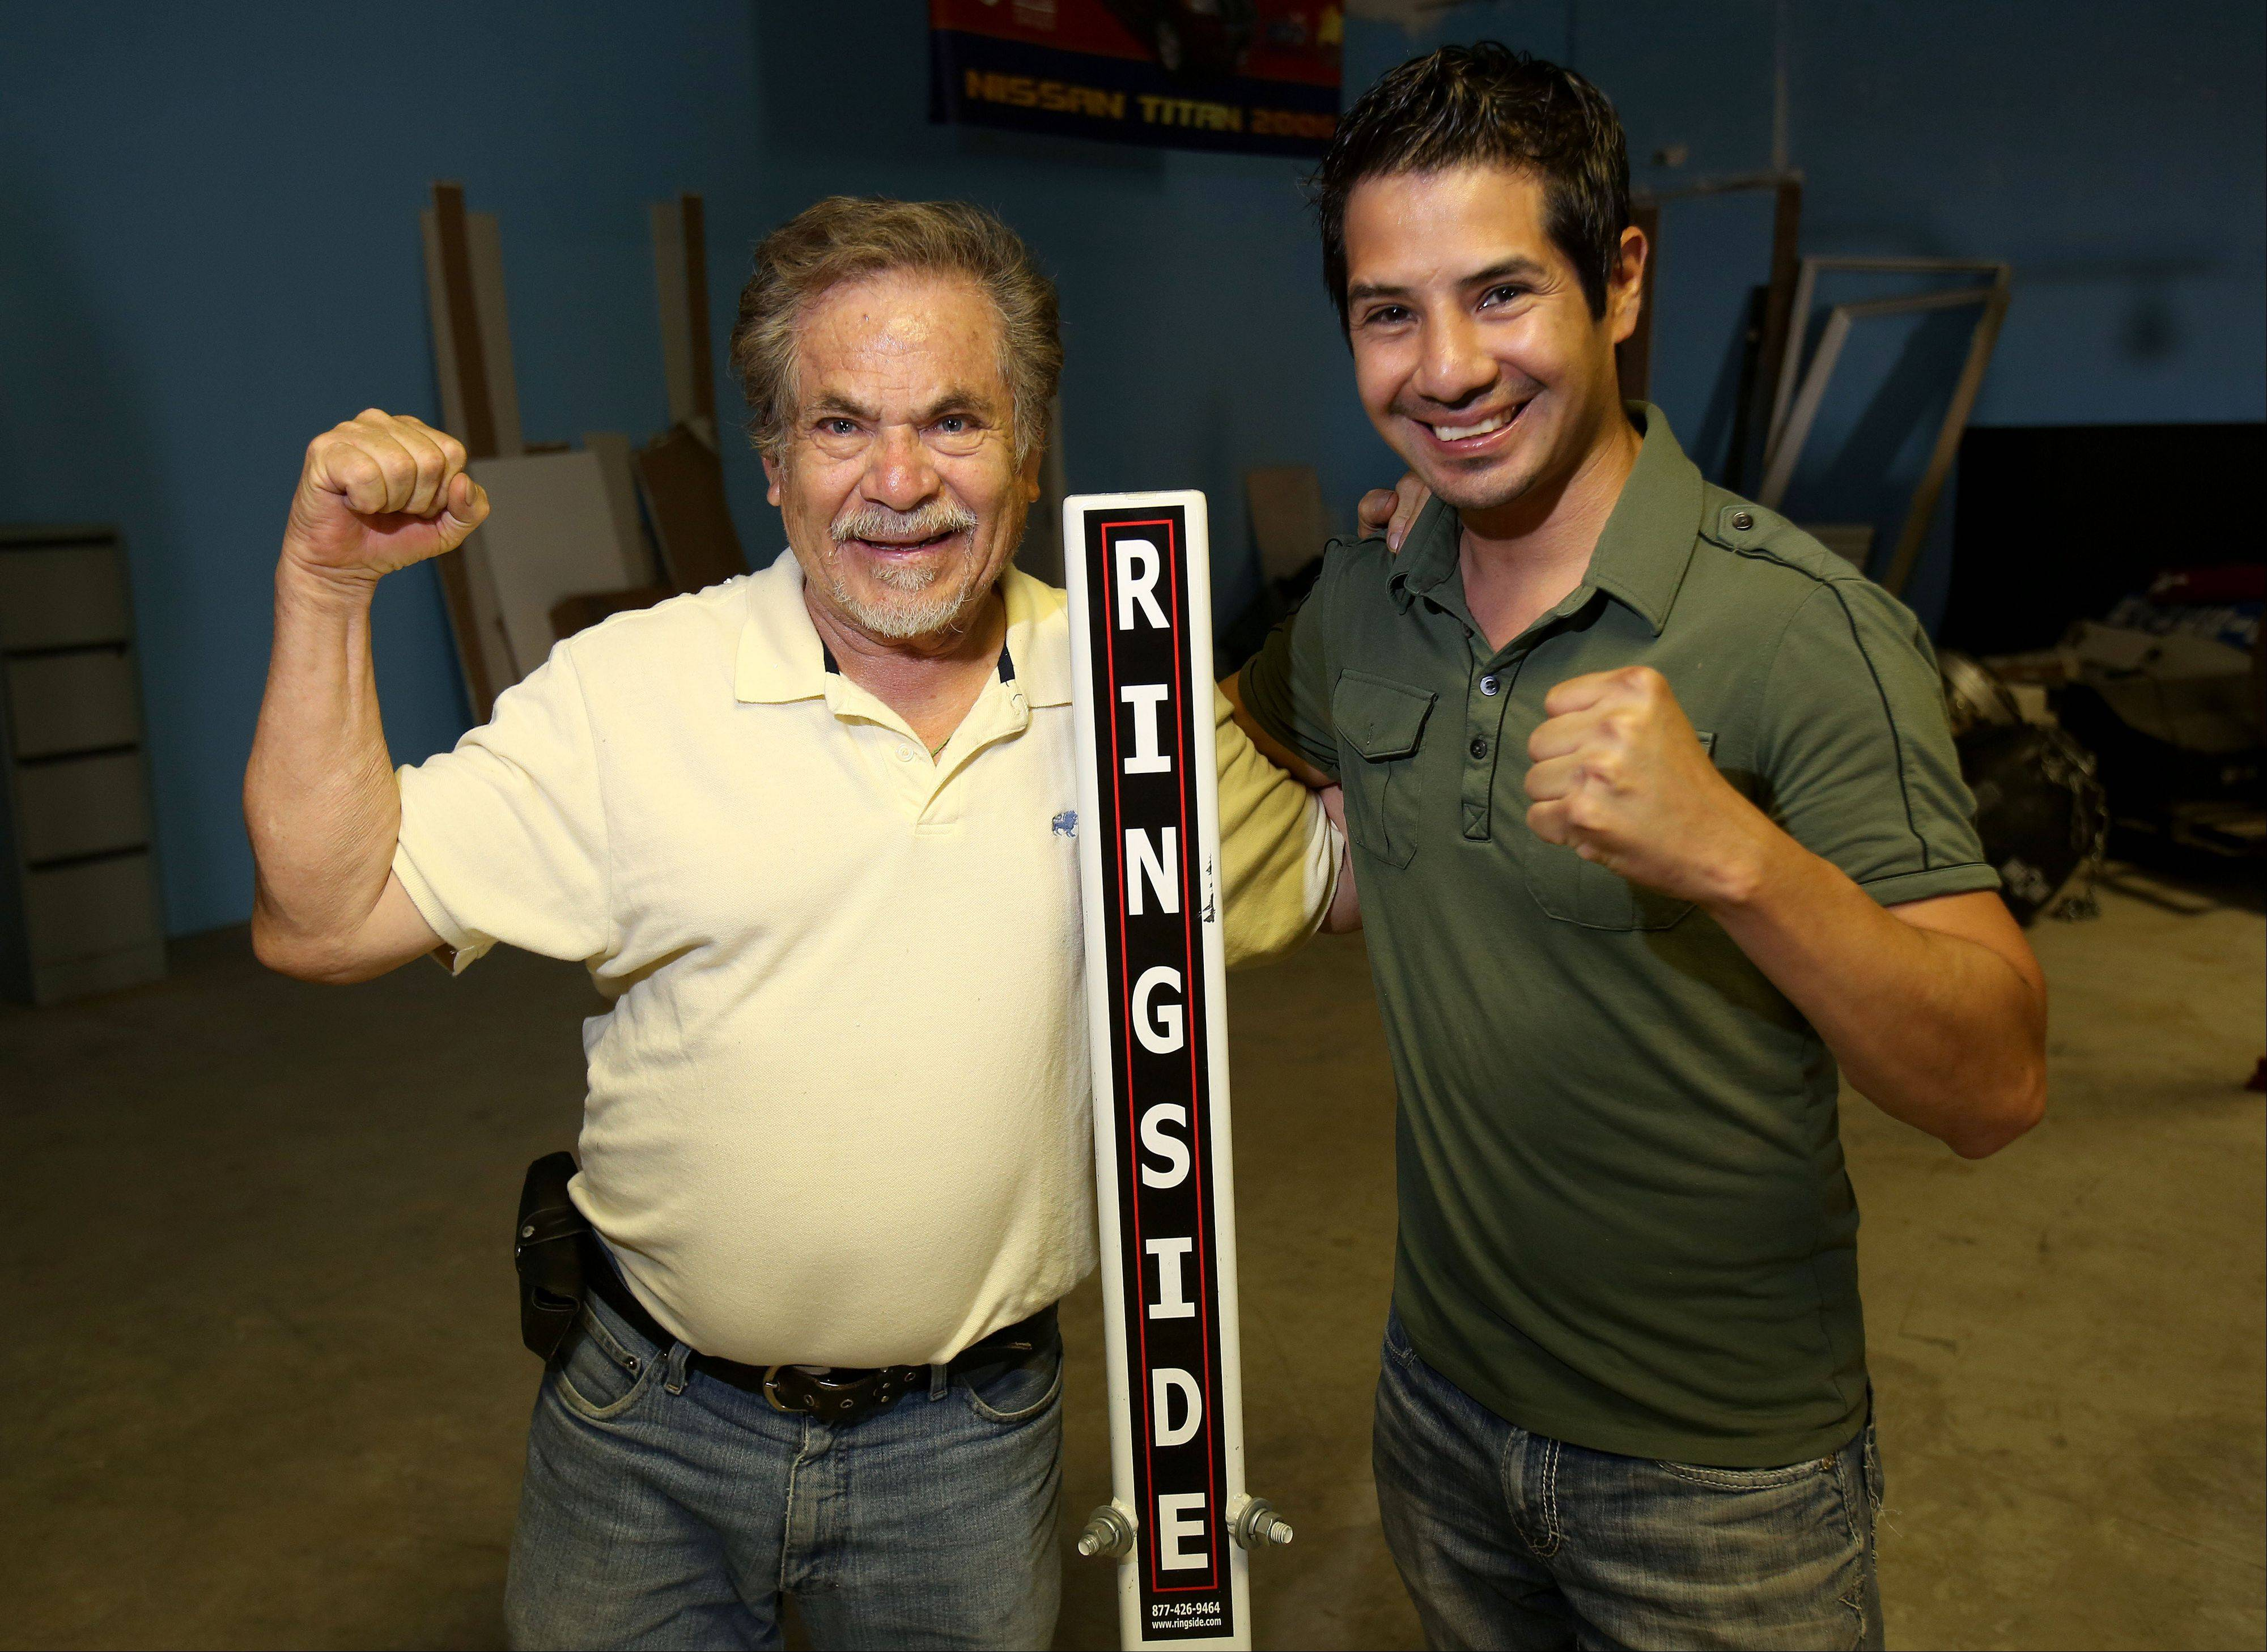 Former professional featherweight boxer Jose Hernandez, right, and his father, also Jose Hernandez, both of Round Lake, plan to open a boxing club and fitness center in Round Lake meant to serve at-risk youths.